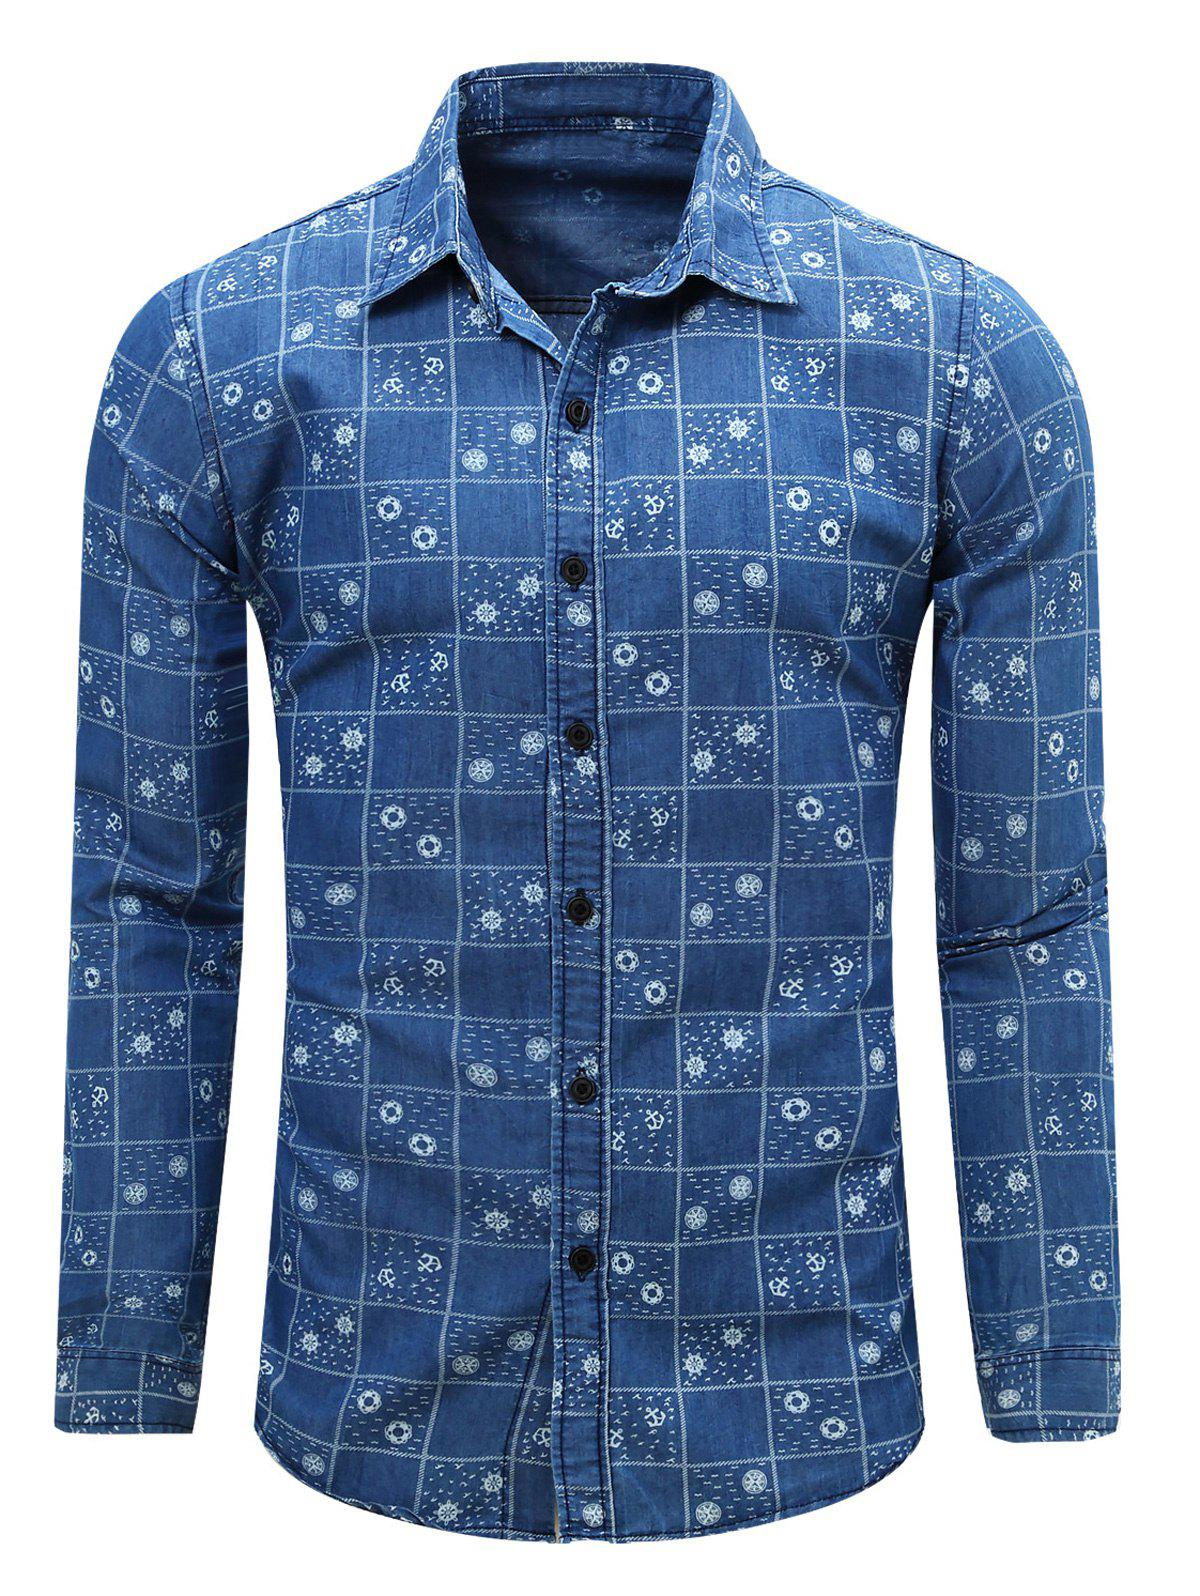 Plaid Print Turn Down Collar Long Sleeve Men's Chambray Shirt - BLUE L